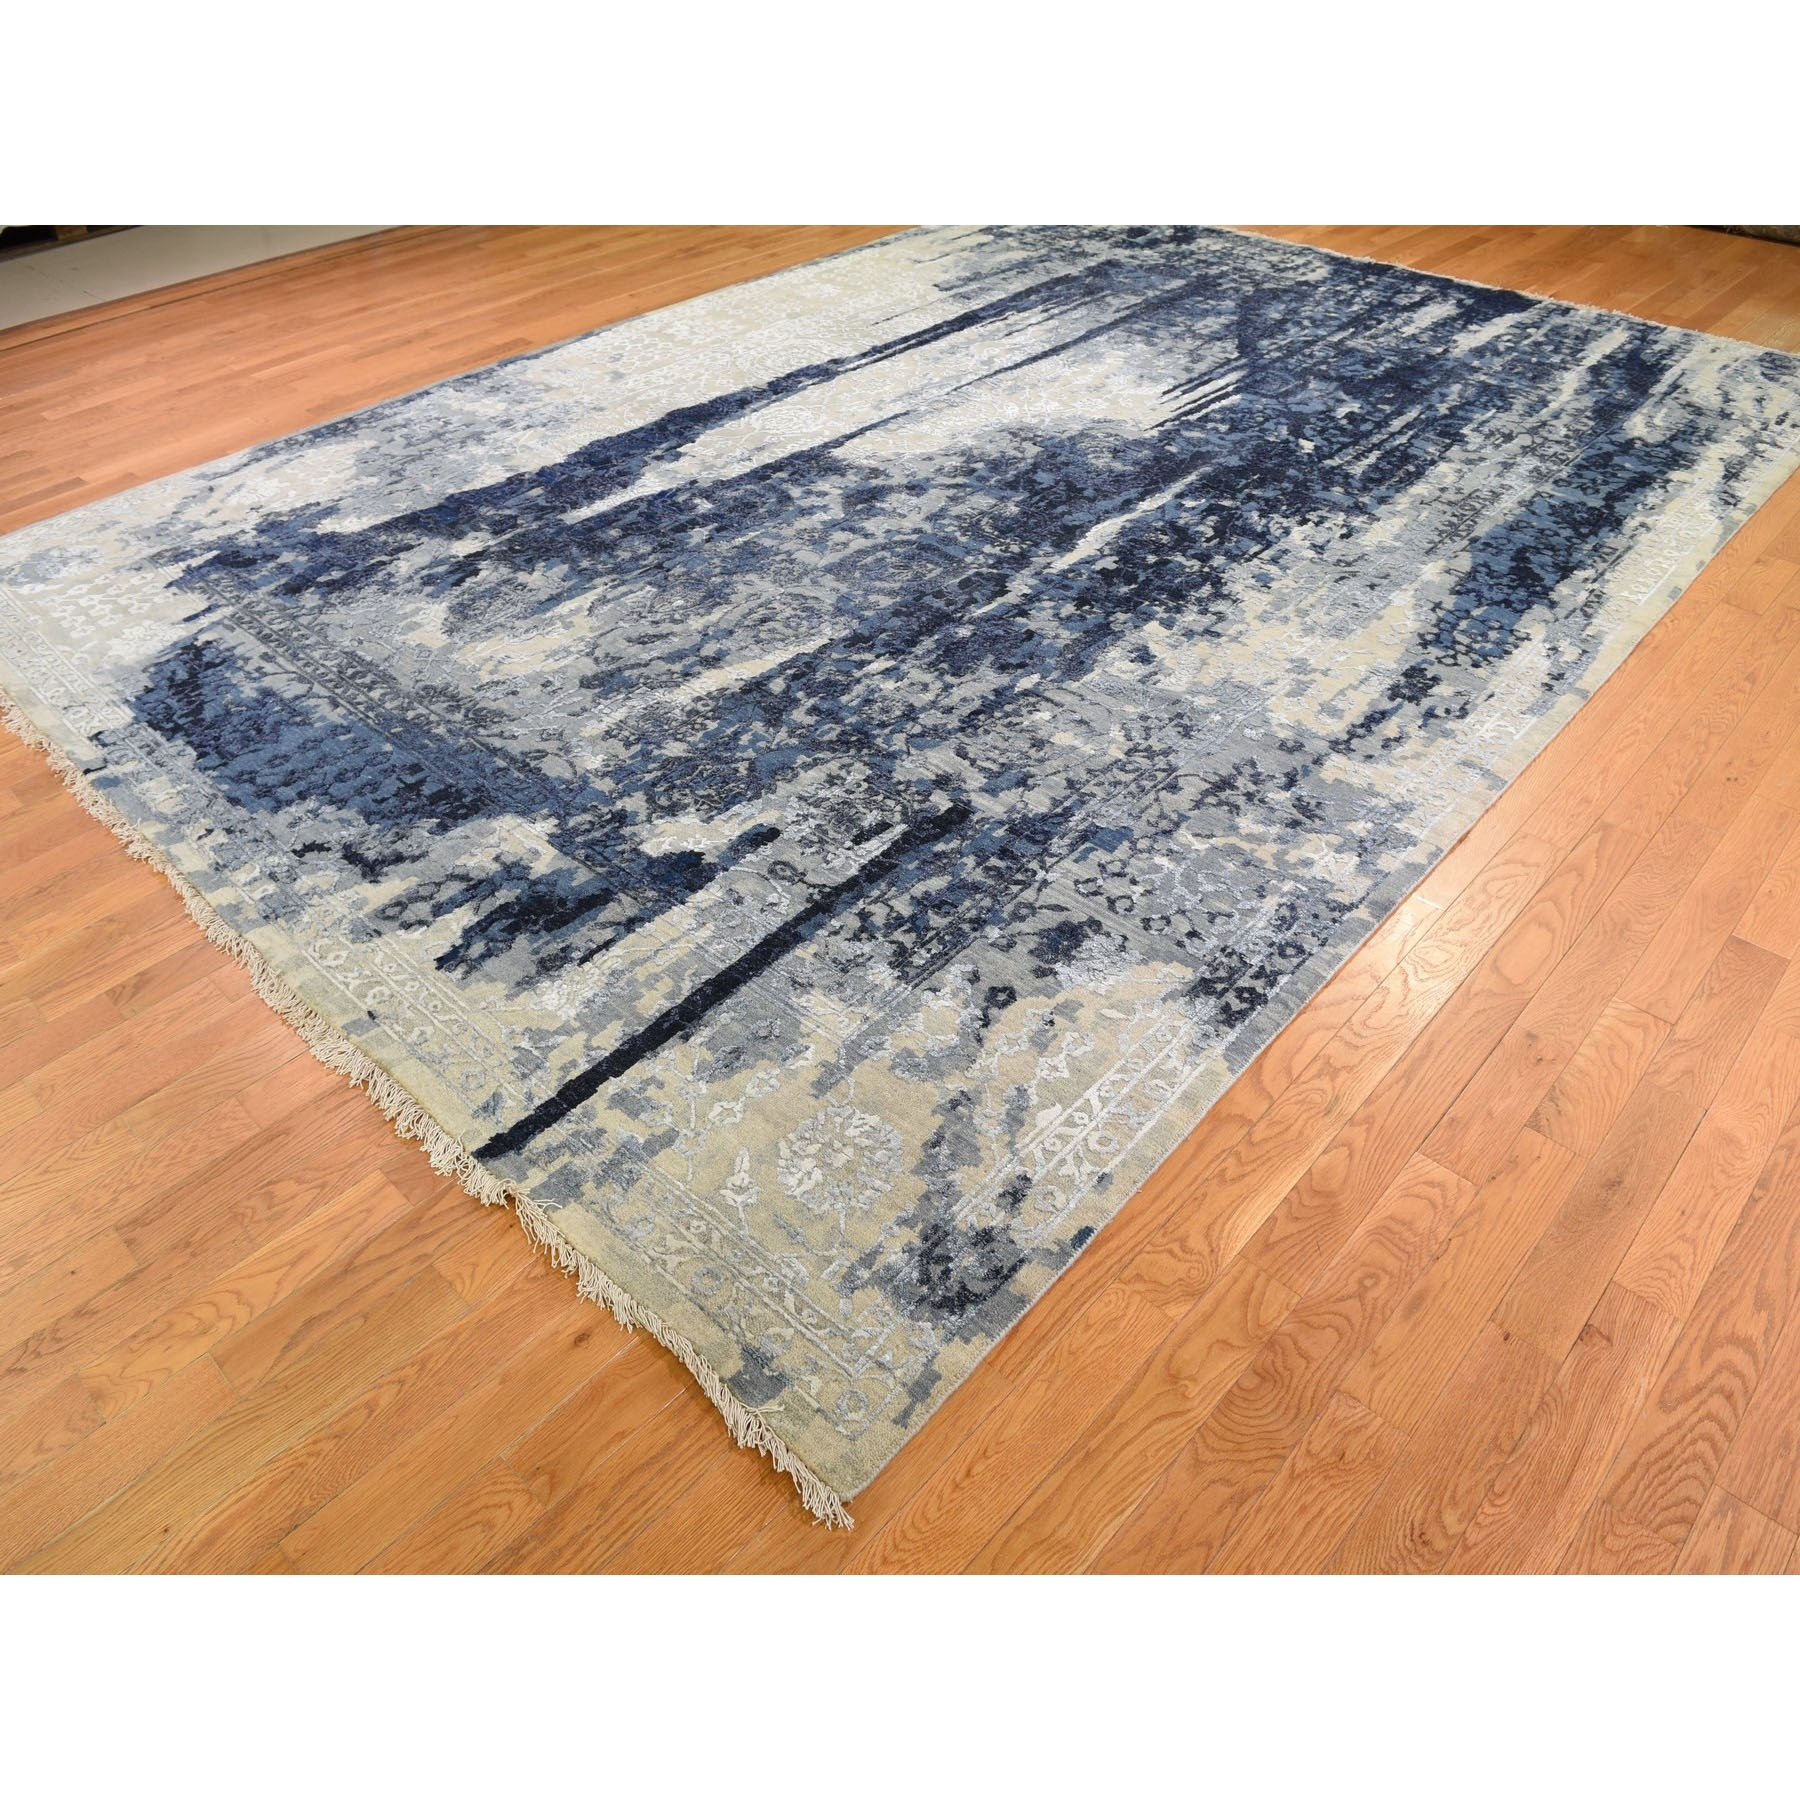 10-x13-10  Wool And Silk Shibori Design Tone On Tone Hand Knotted Oriental Rug